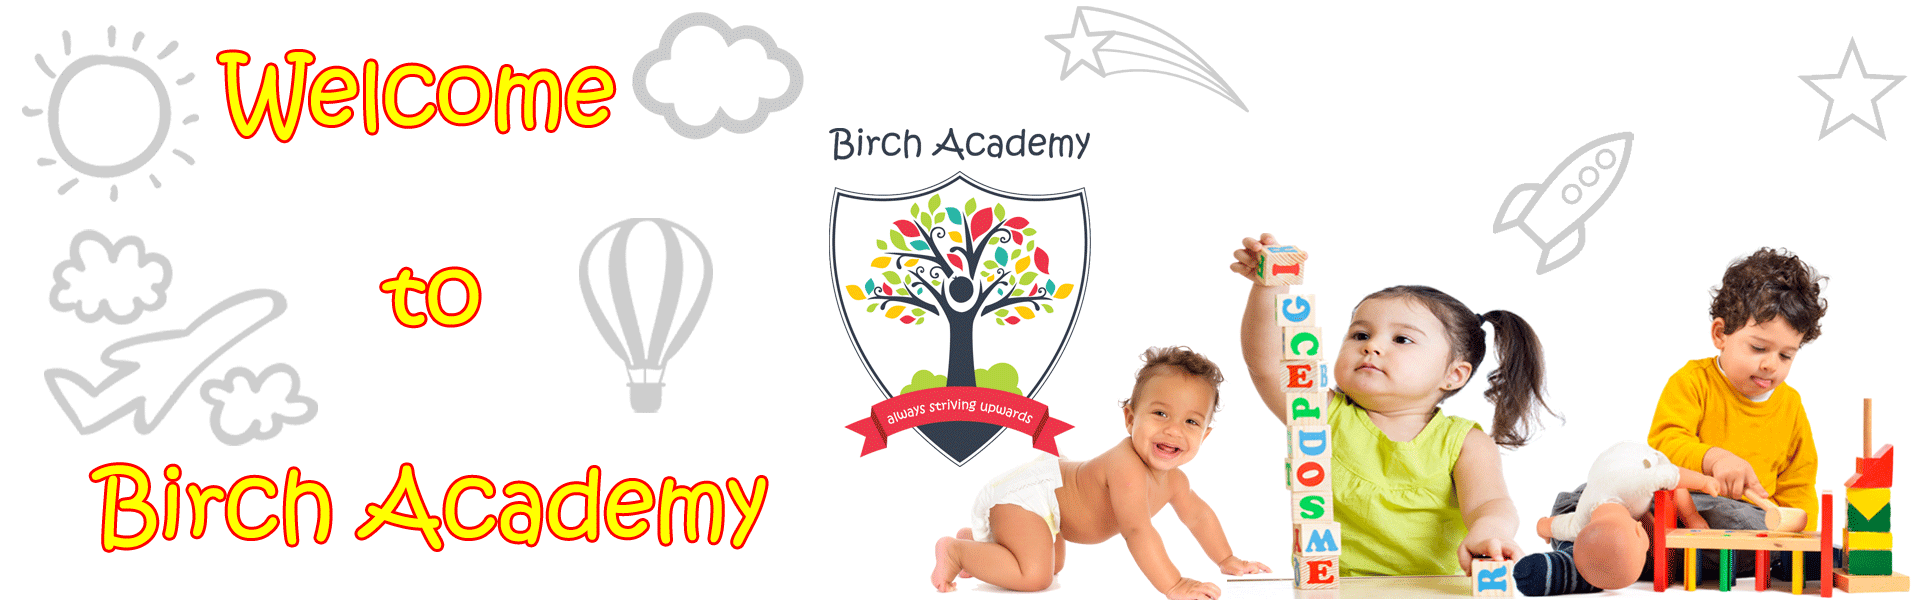 Birch Academy Baby Care